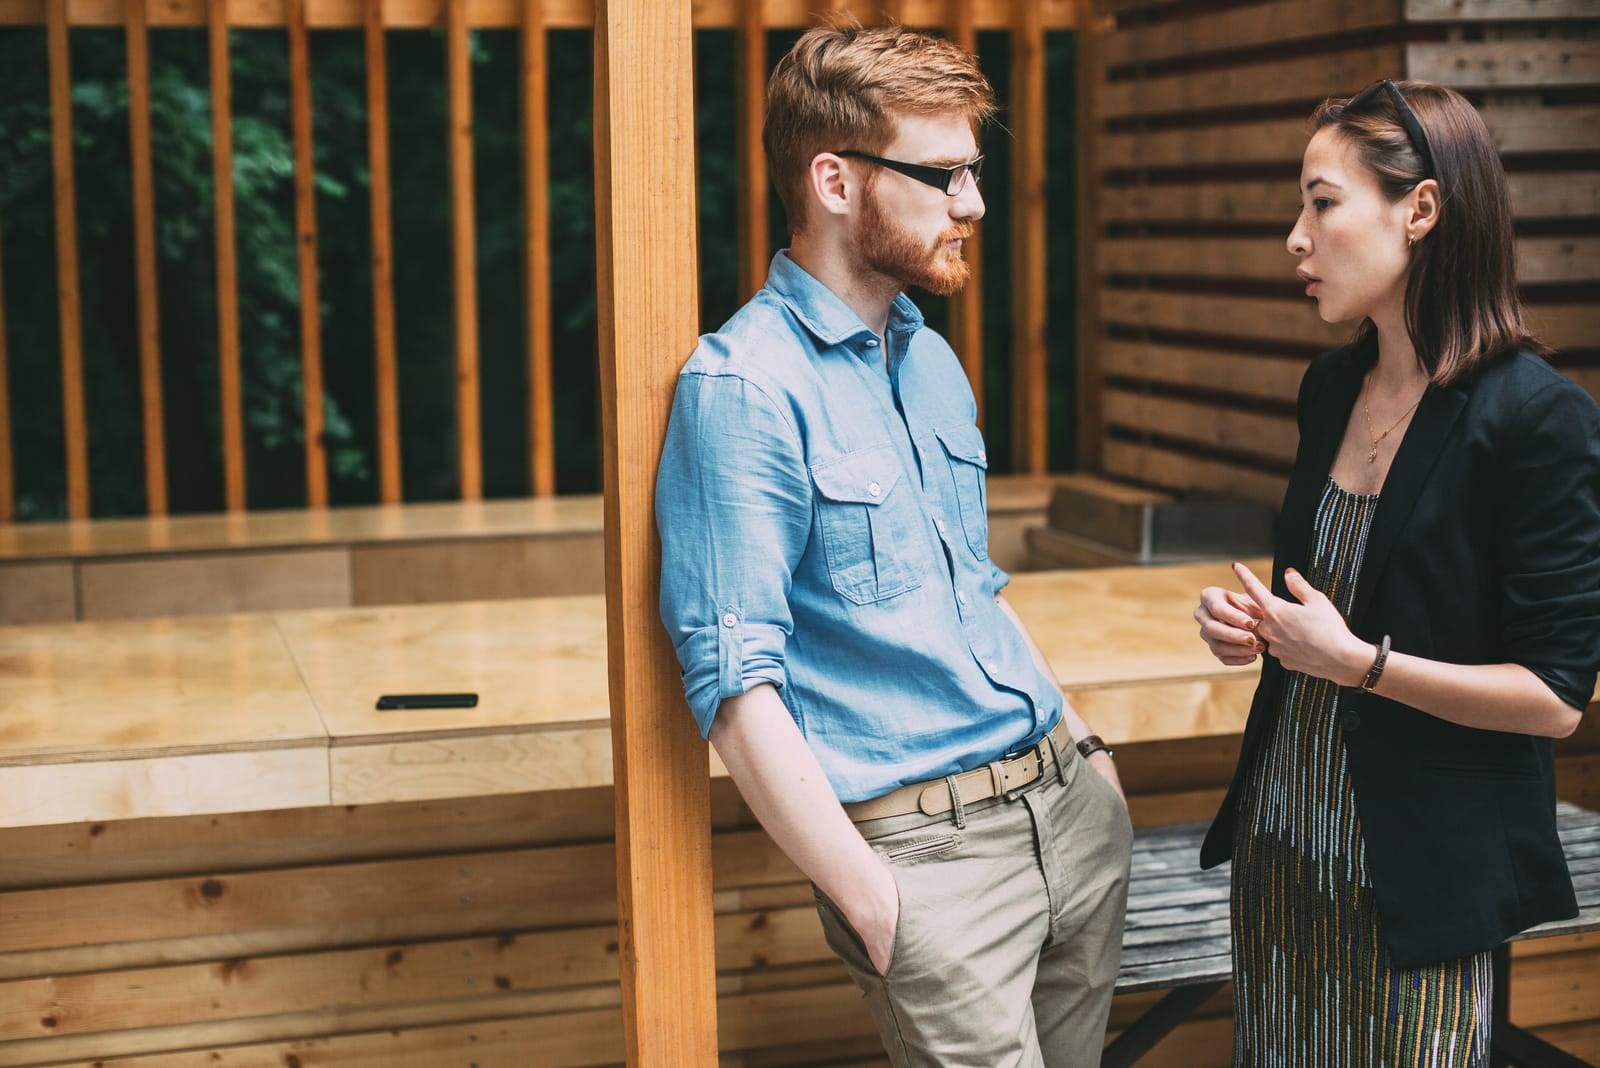 a man and a woman stand and talk